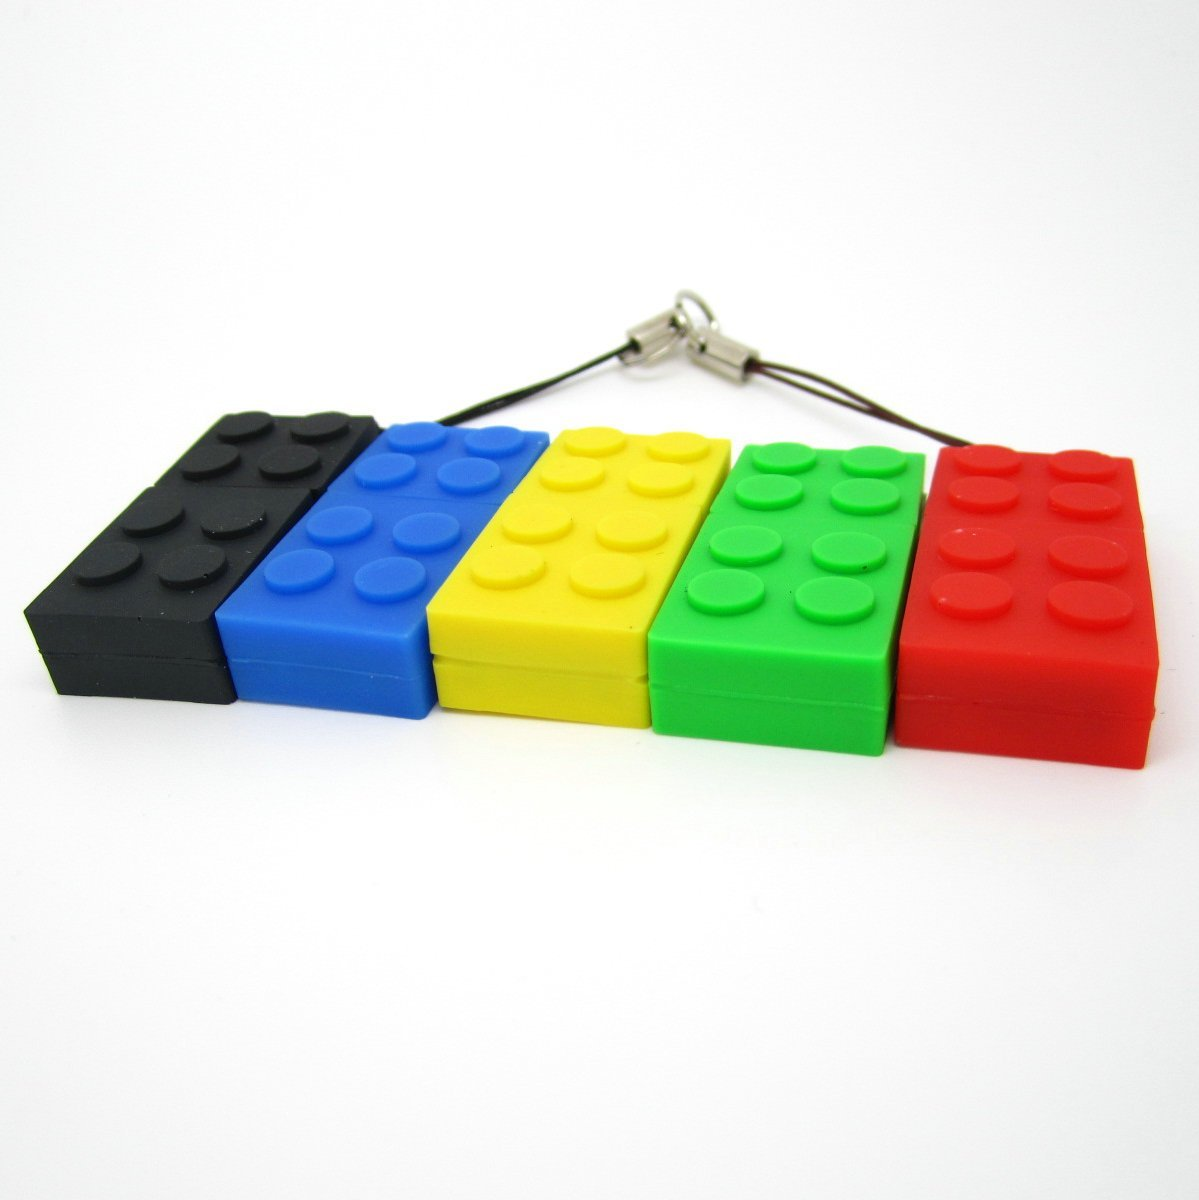 Building block USB 2.0 USB Flash Drive thumb pendrive u disk usb creativo memory stick 4GB 8GB 16GB 32GB 64GB S327